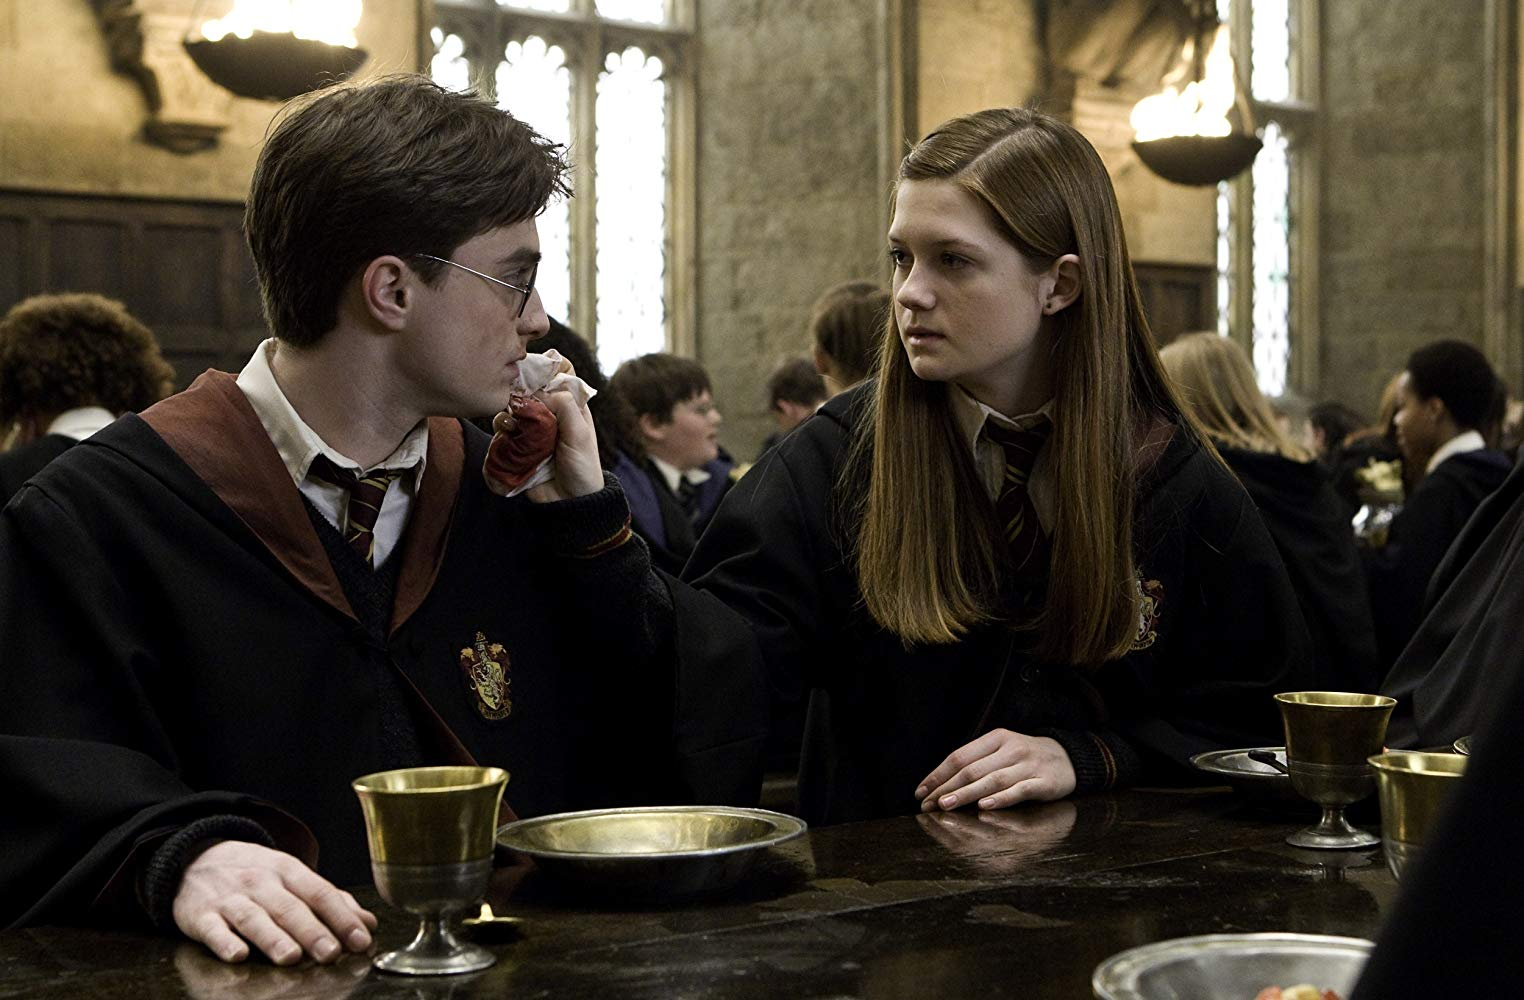 Growing attraction between Harry Potter (Daniel Radcliffe) and Ginny Weasley (Bonnie Wright) in Harry Potter and the Half-Blood Prince (2009)